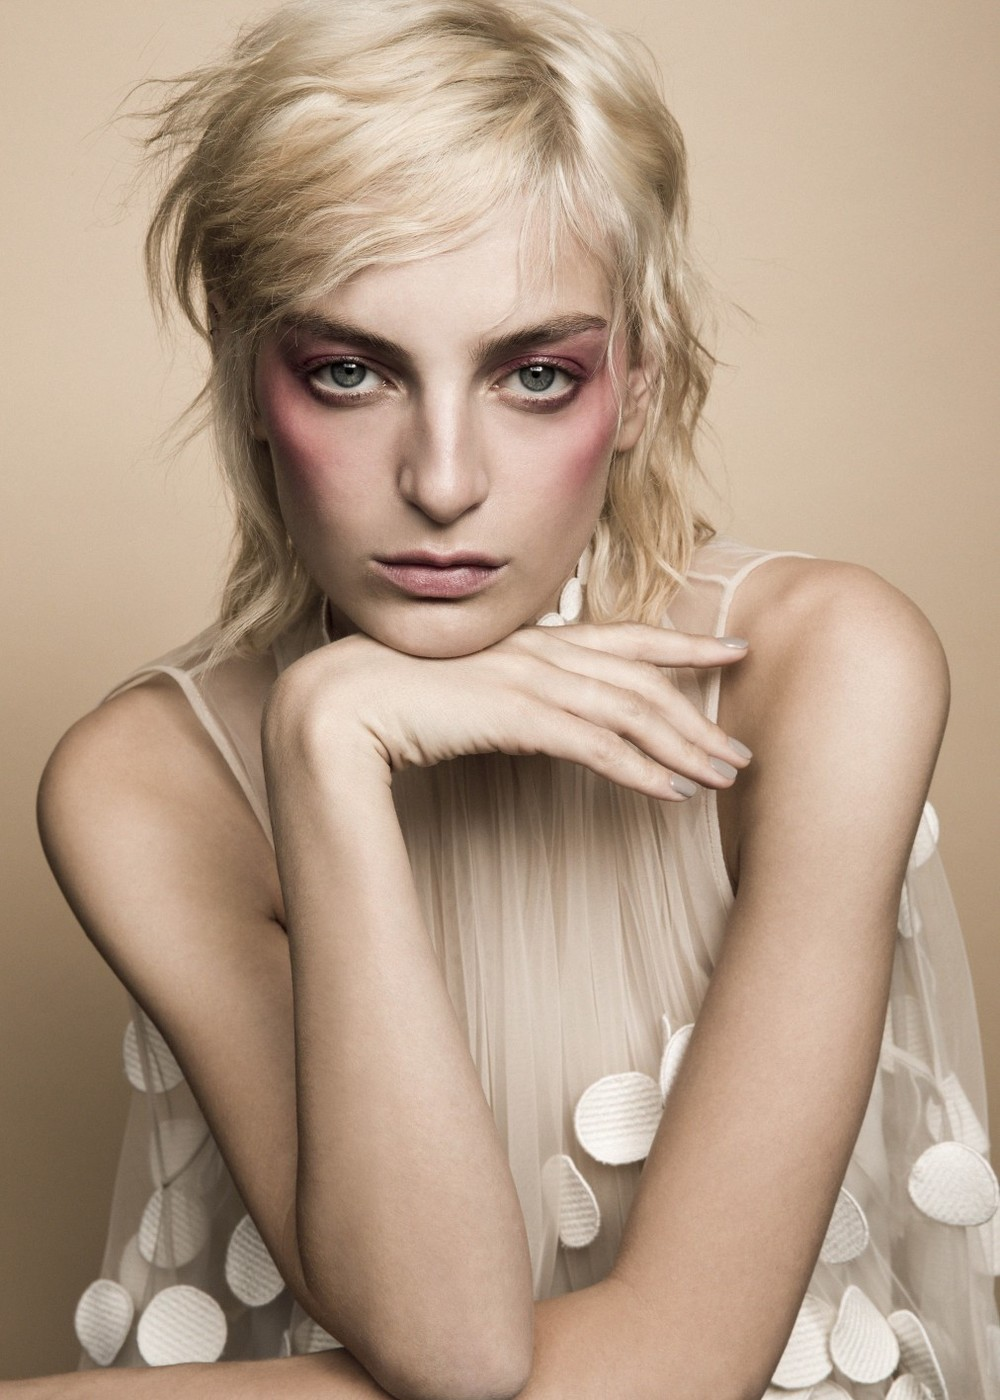 Rose Smith shot by Brooke Coffey for  Models.com , styling by Liz Cresci, hair by Stefano Greco, makeup by Maki H